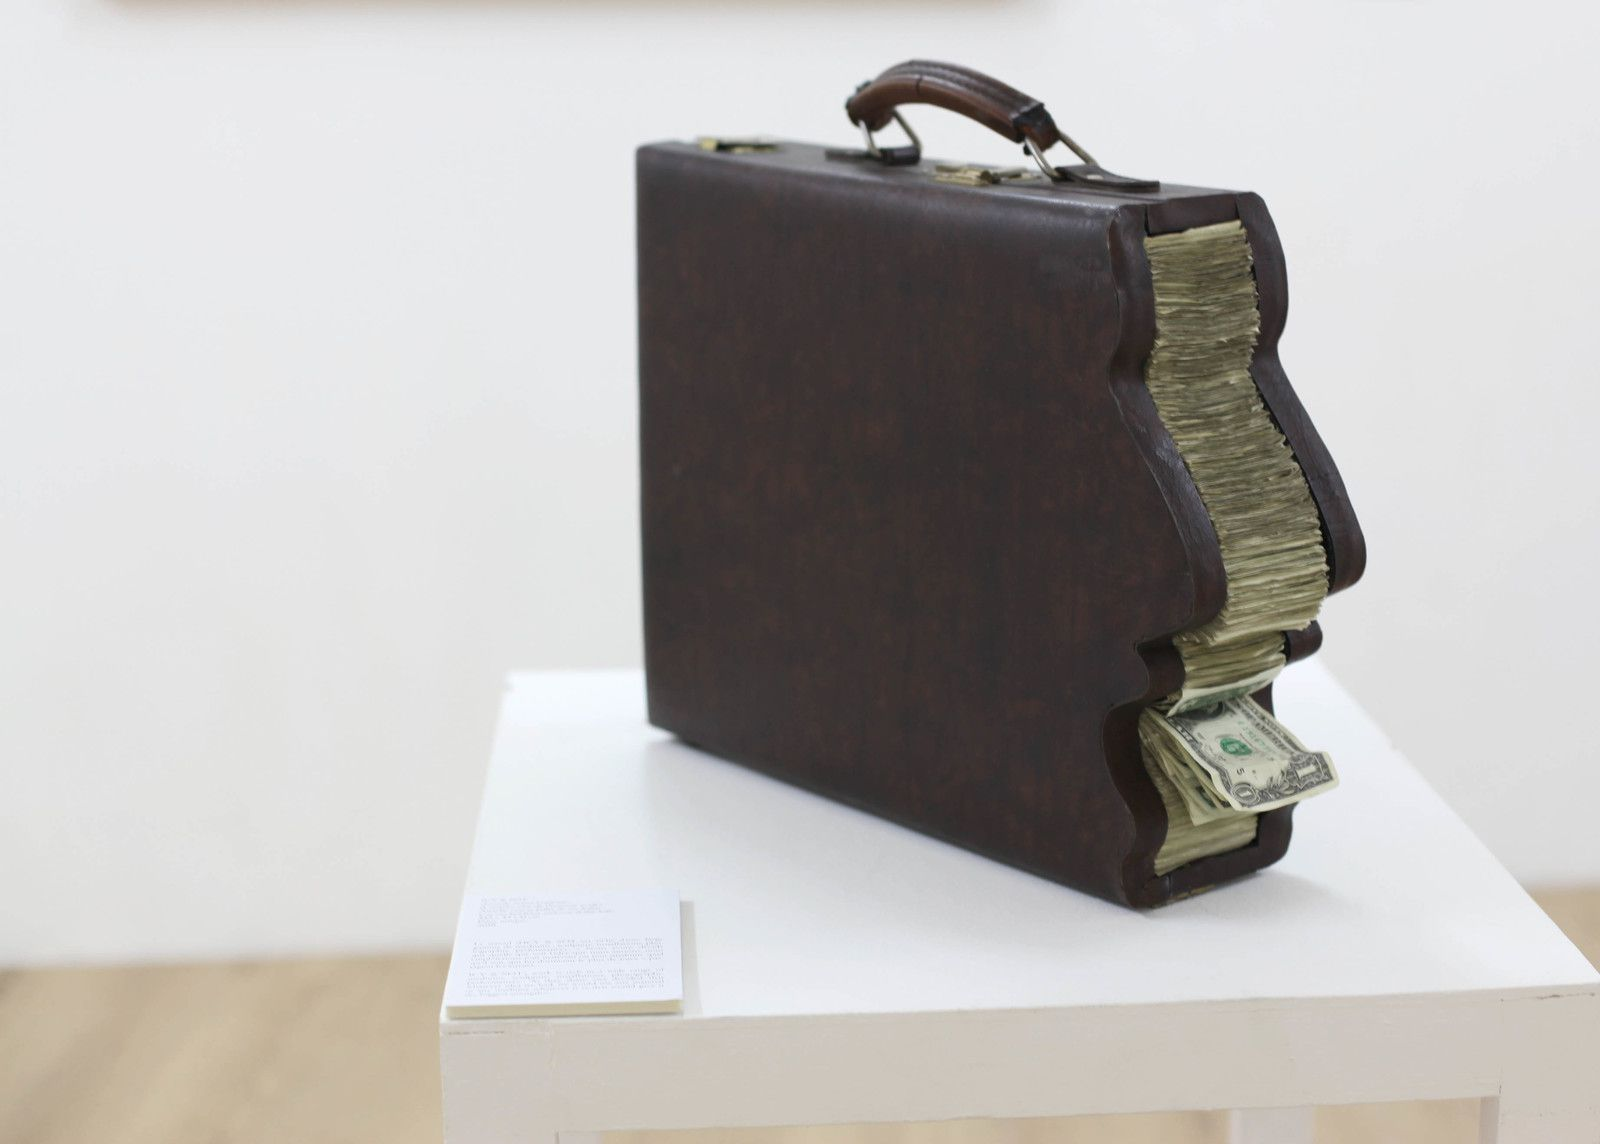 """Greedy man's briefcase (L'attaché case de l'homme avide)"", 2018 de ICY AND SOT - Courtesy de la Galerie Danysz - Paris © Photo Éric Simon"